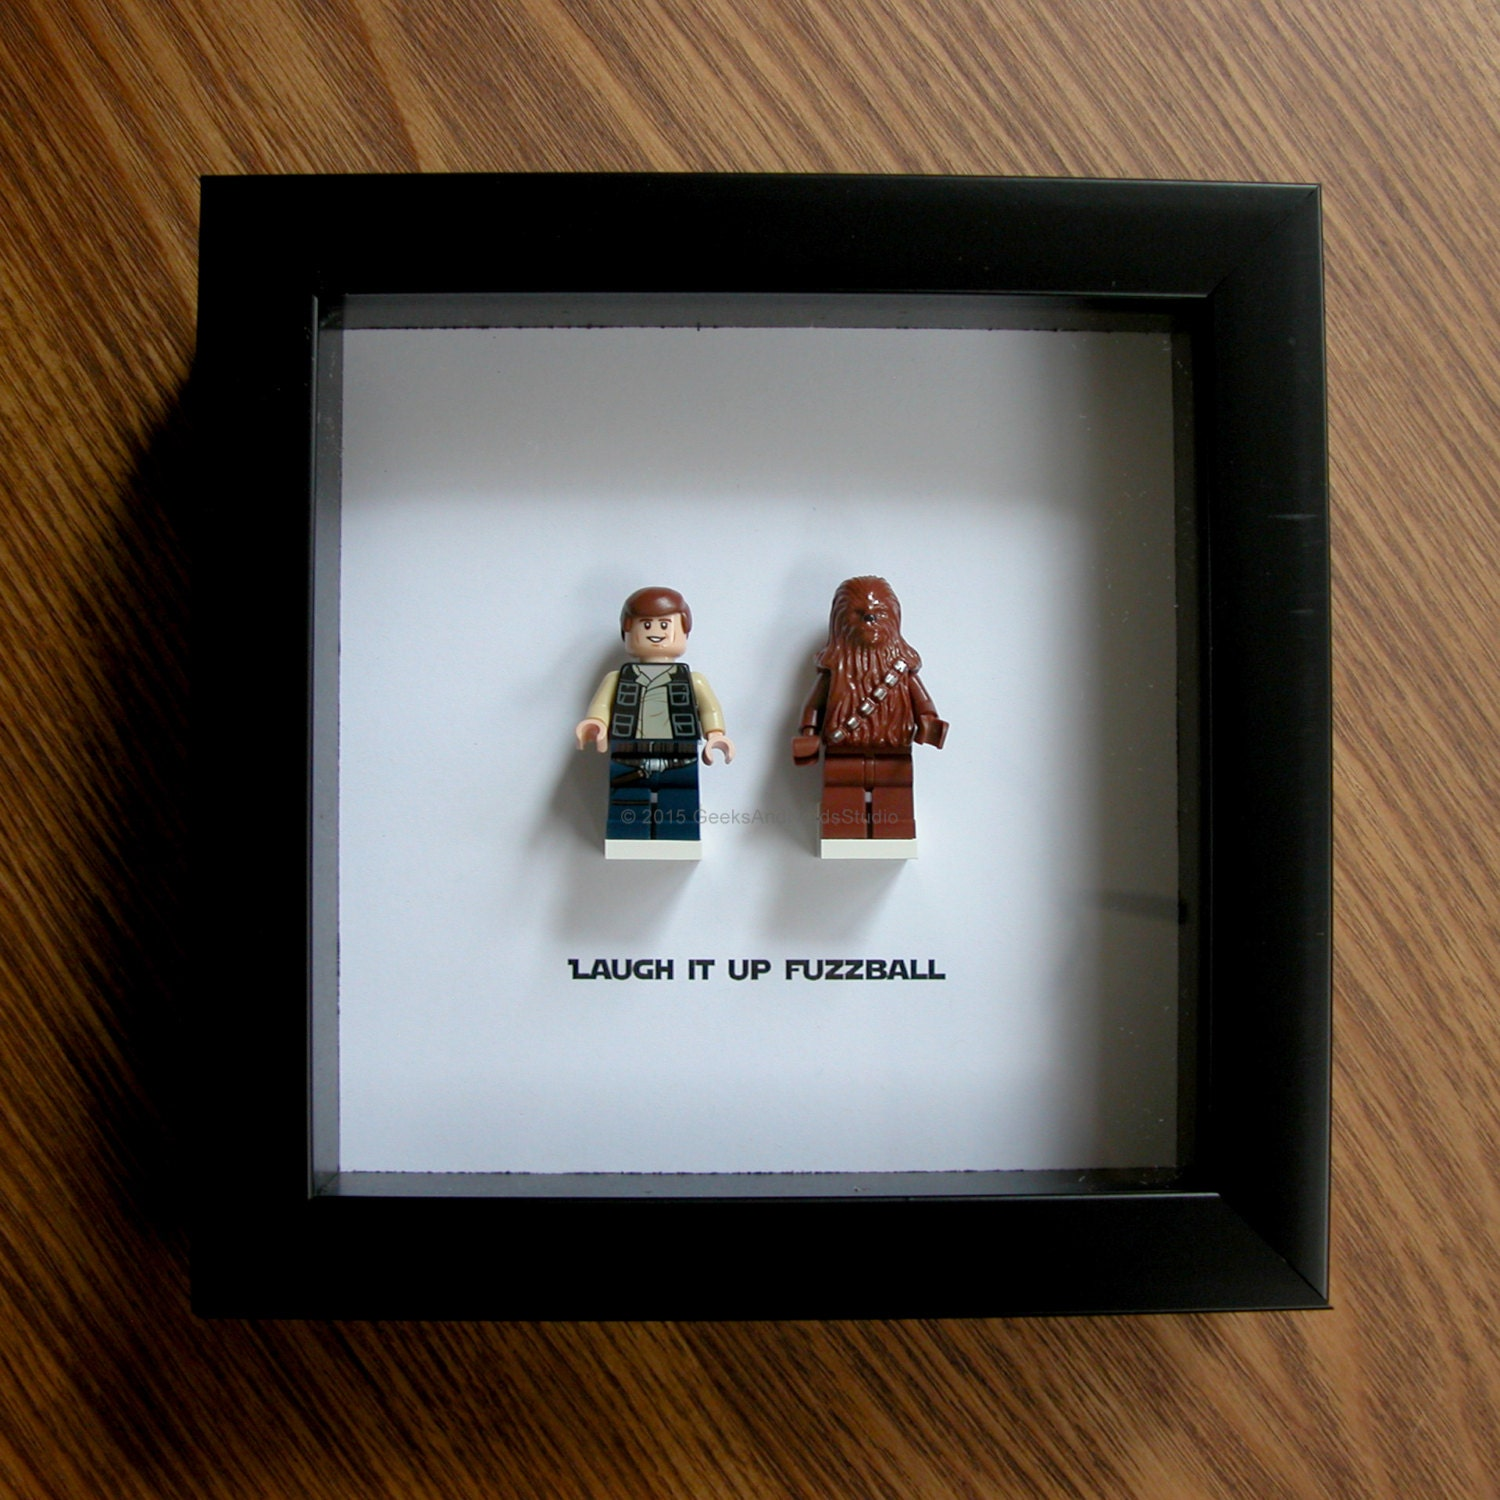 star wars framed art lego han solo chewbacca lego. Black Bedroom Furniture Sets. Home Design Ideas